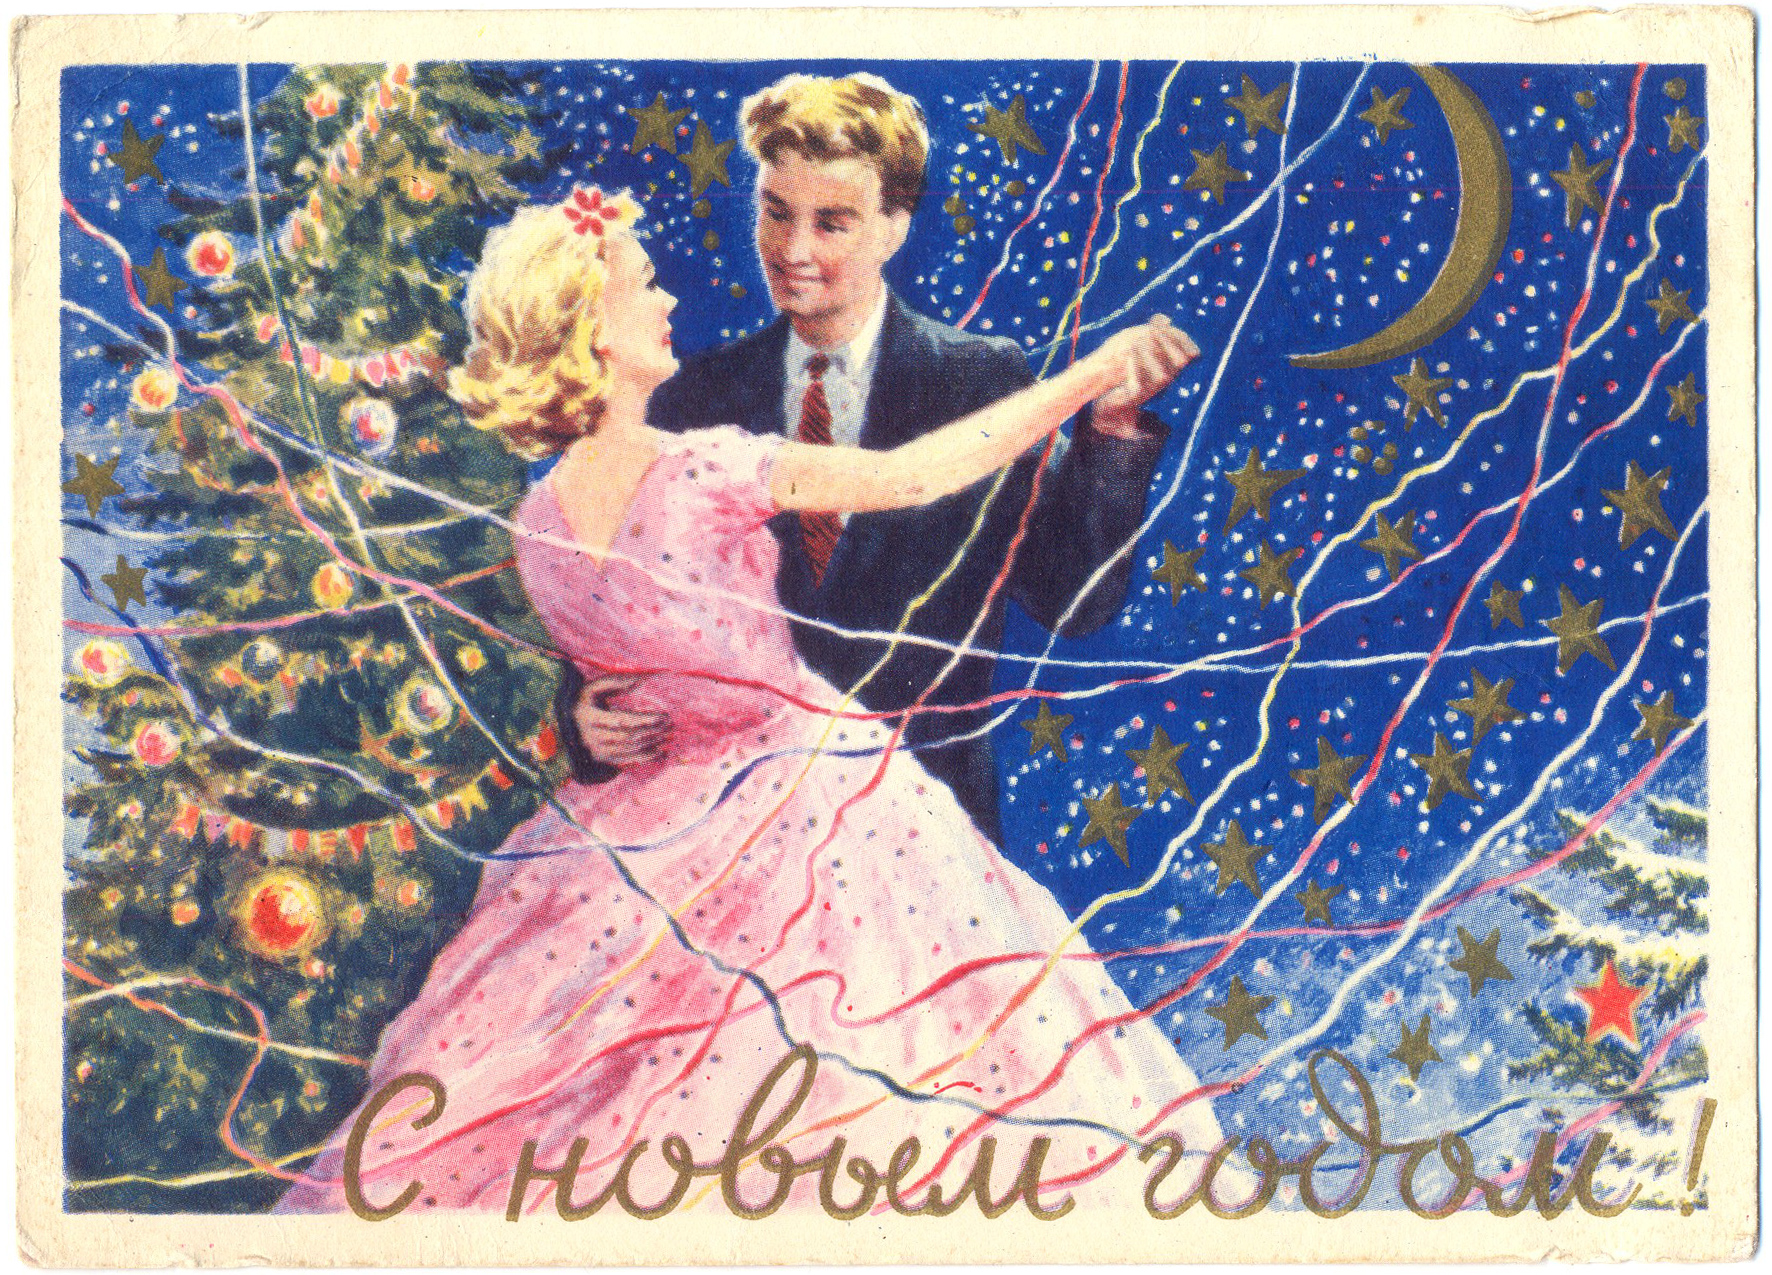 A Soviet New Years Card